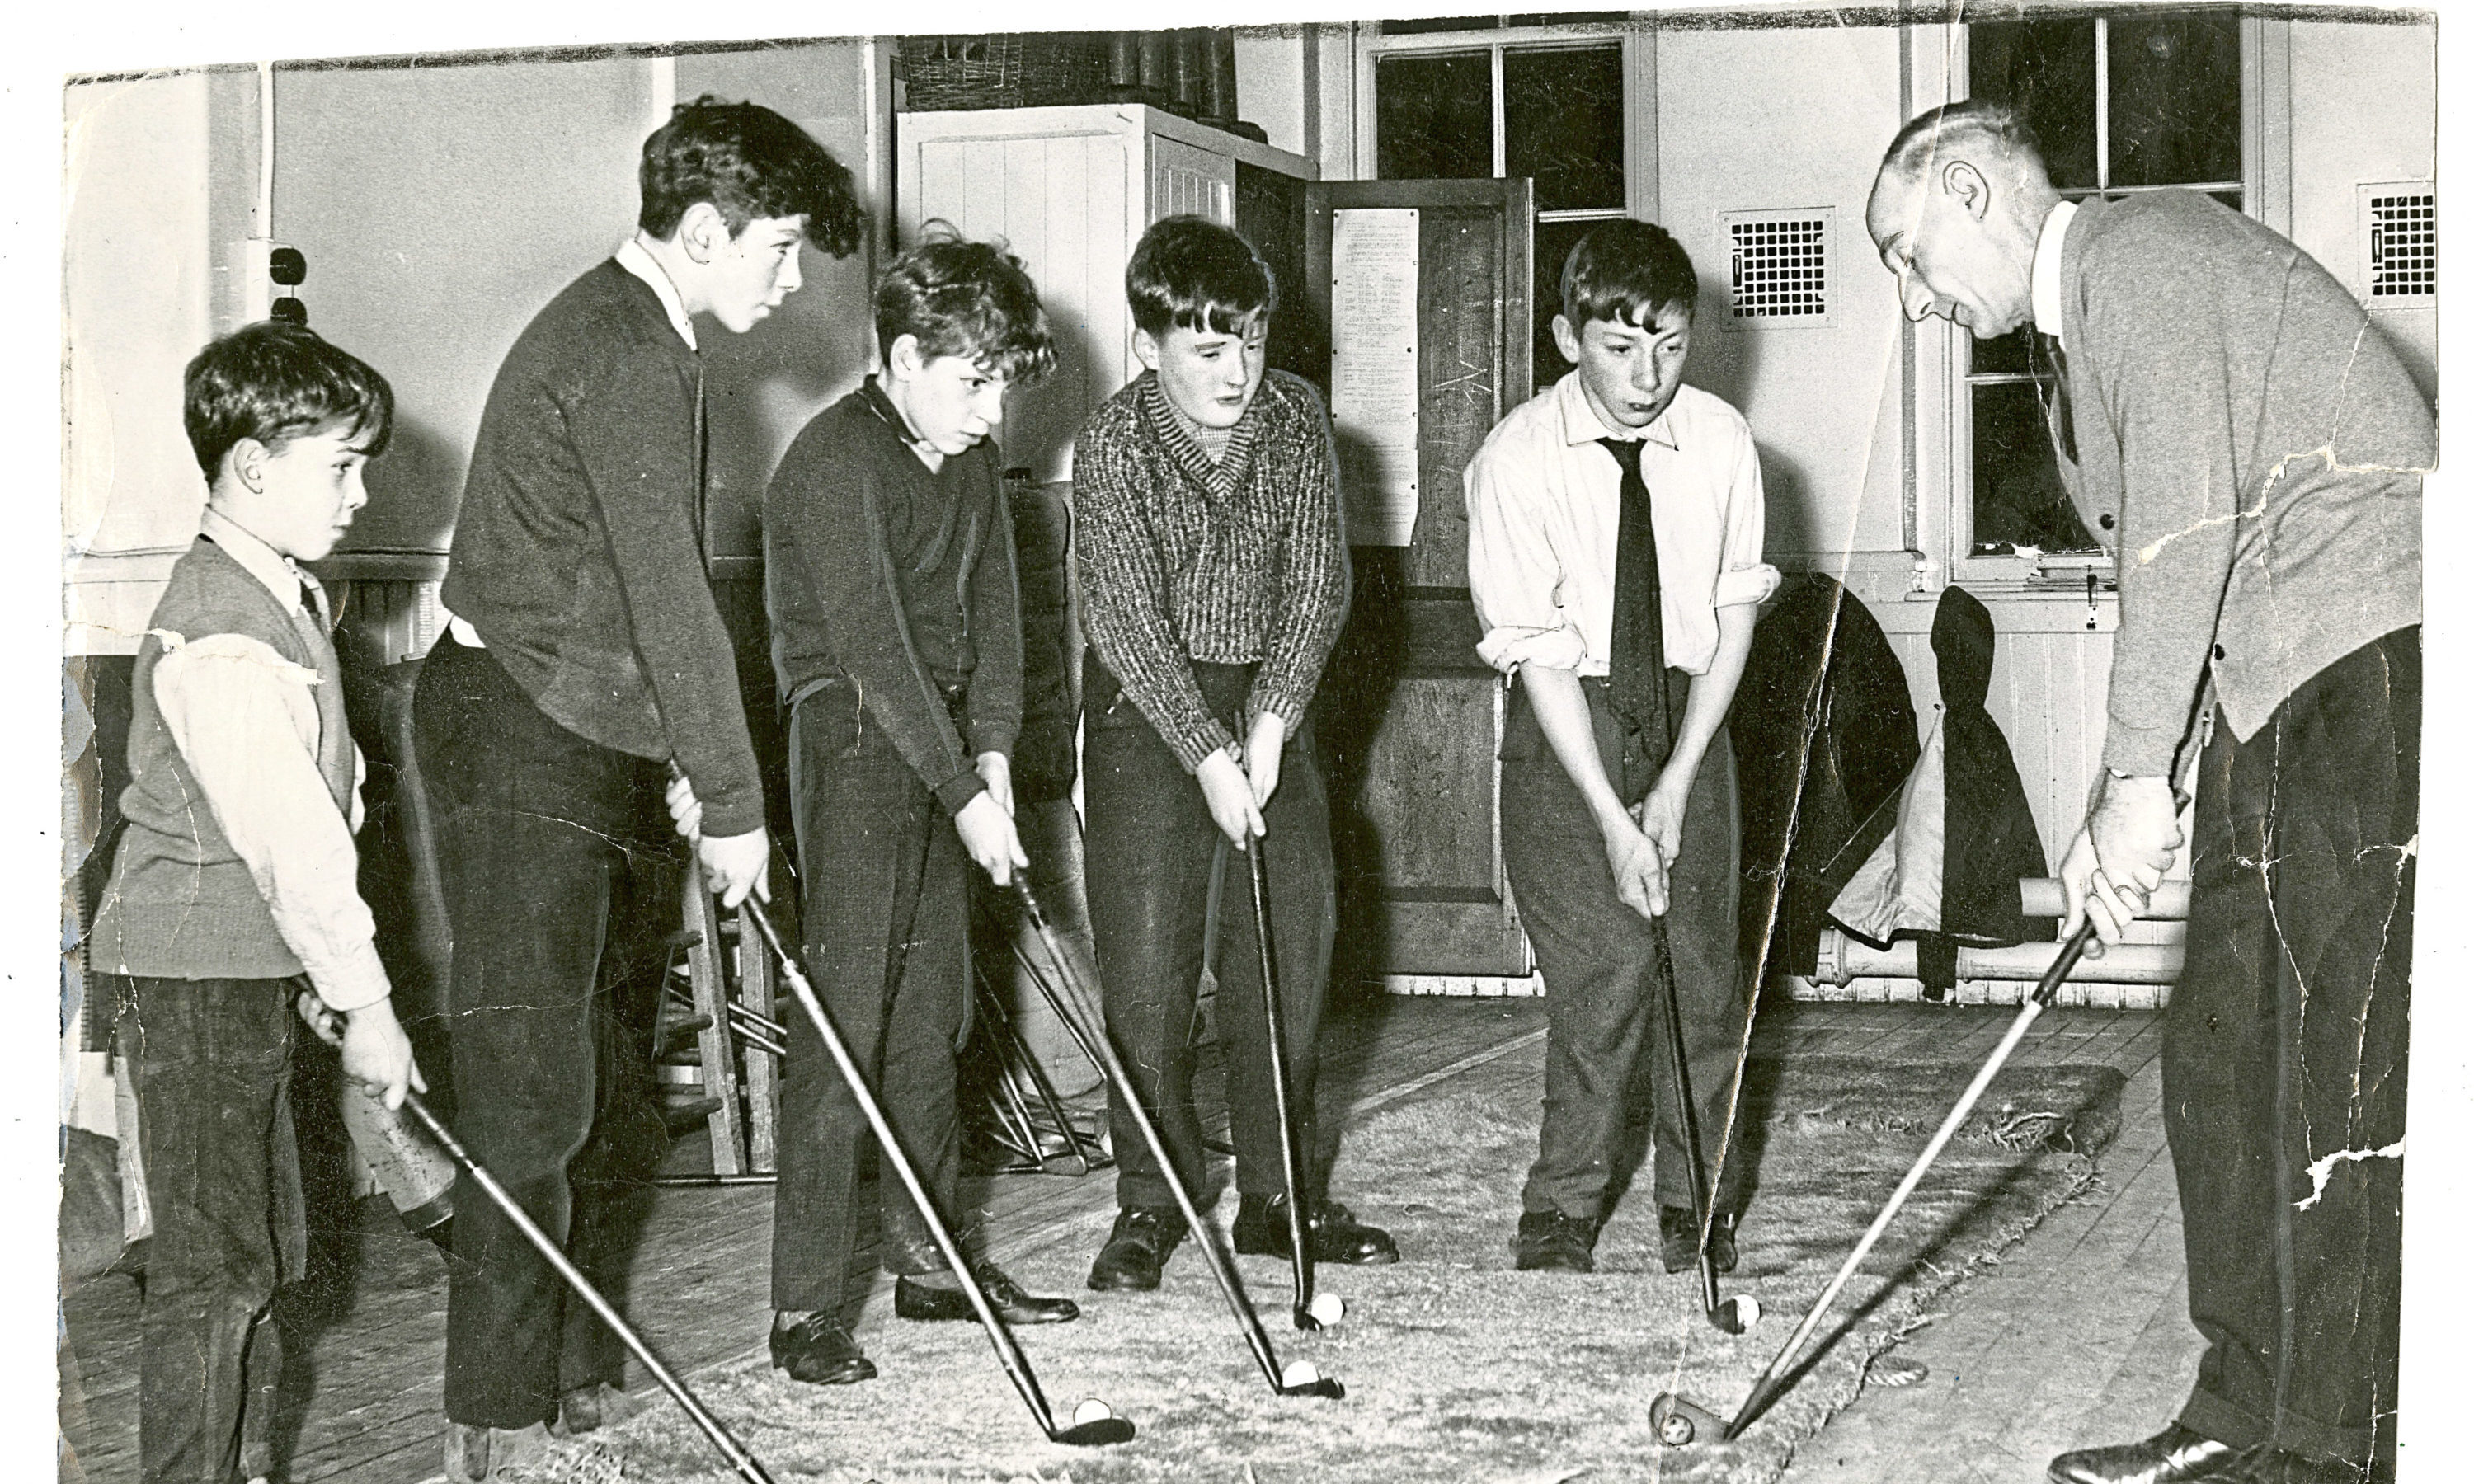 Back in the Day - Saturday 19 May 18 Children at Fairmuir School get a golf lesson from Downfeild Professional Fred Walker and pupils, (from left) John Horbus, Michael O'Neill, James McDonell, David Brown, John Clark. C402 1966-01-10 Children at Fairmuir School Dundee get a golf lesson (C)DCT